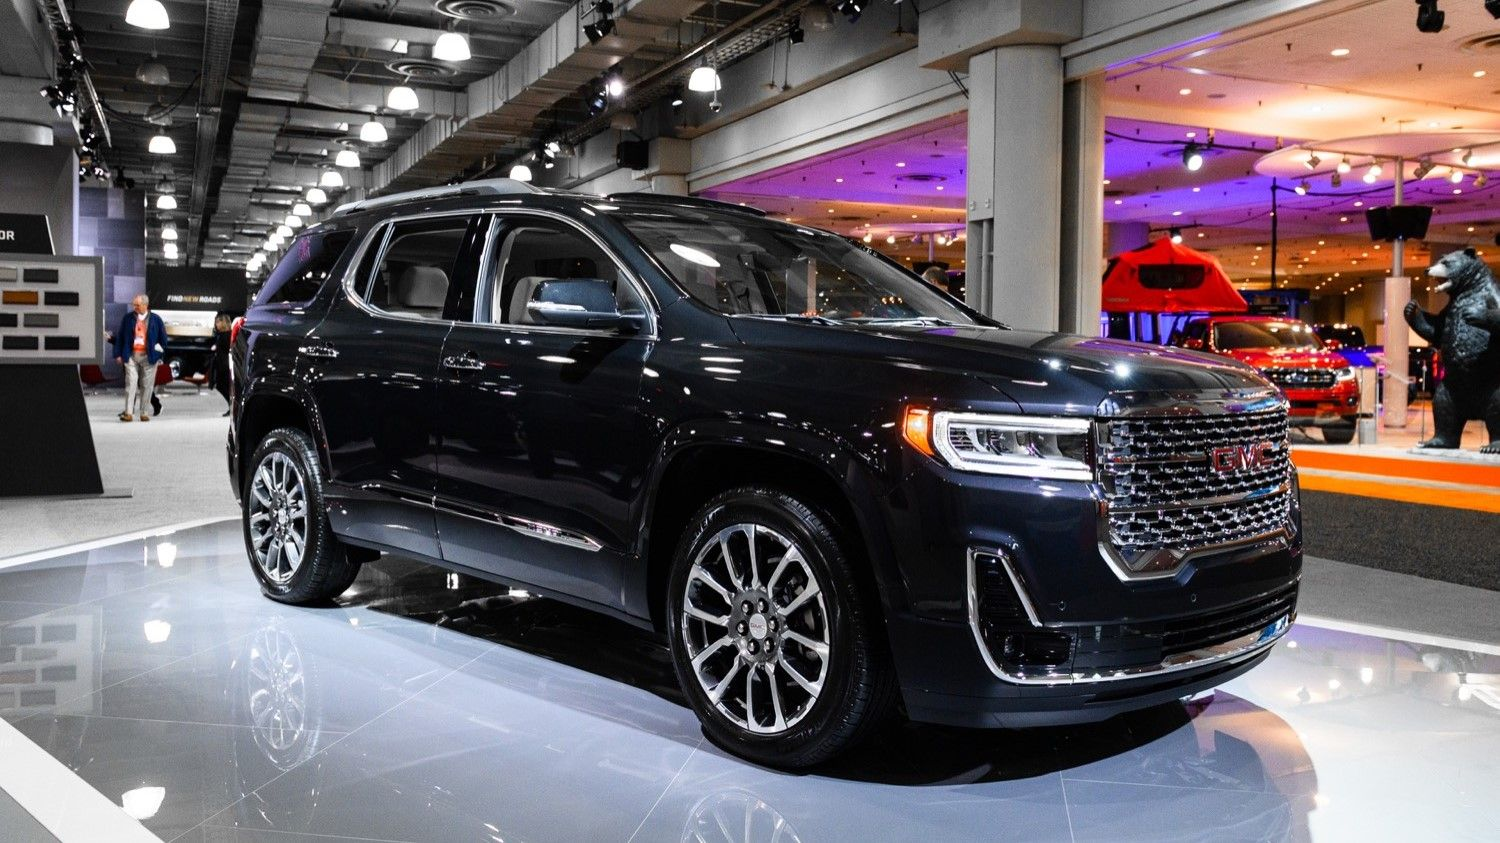 2021 Gmc Acadia Denali Review Pricing Performance Interior Mpg